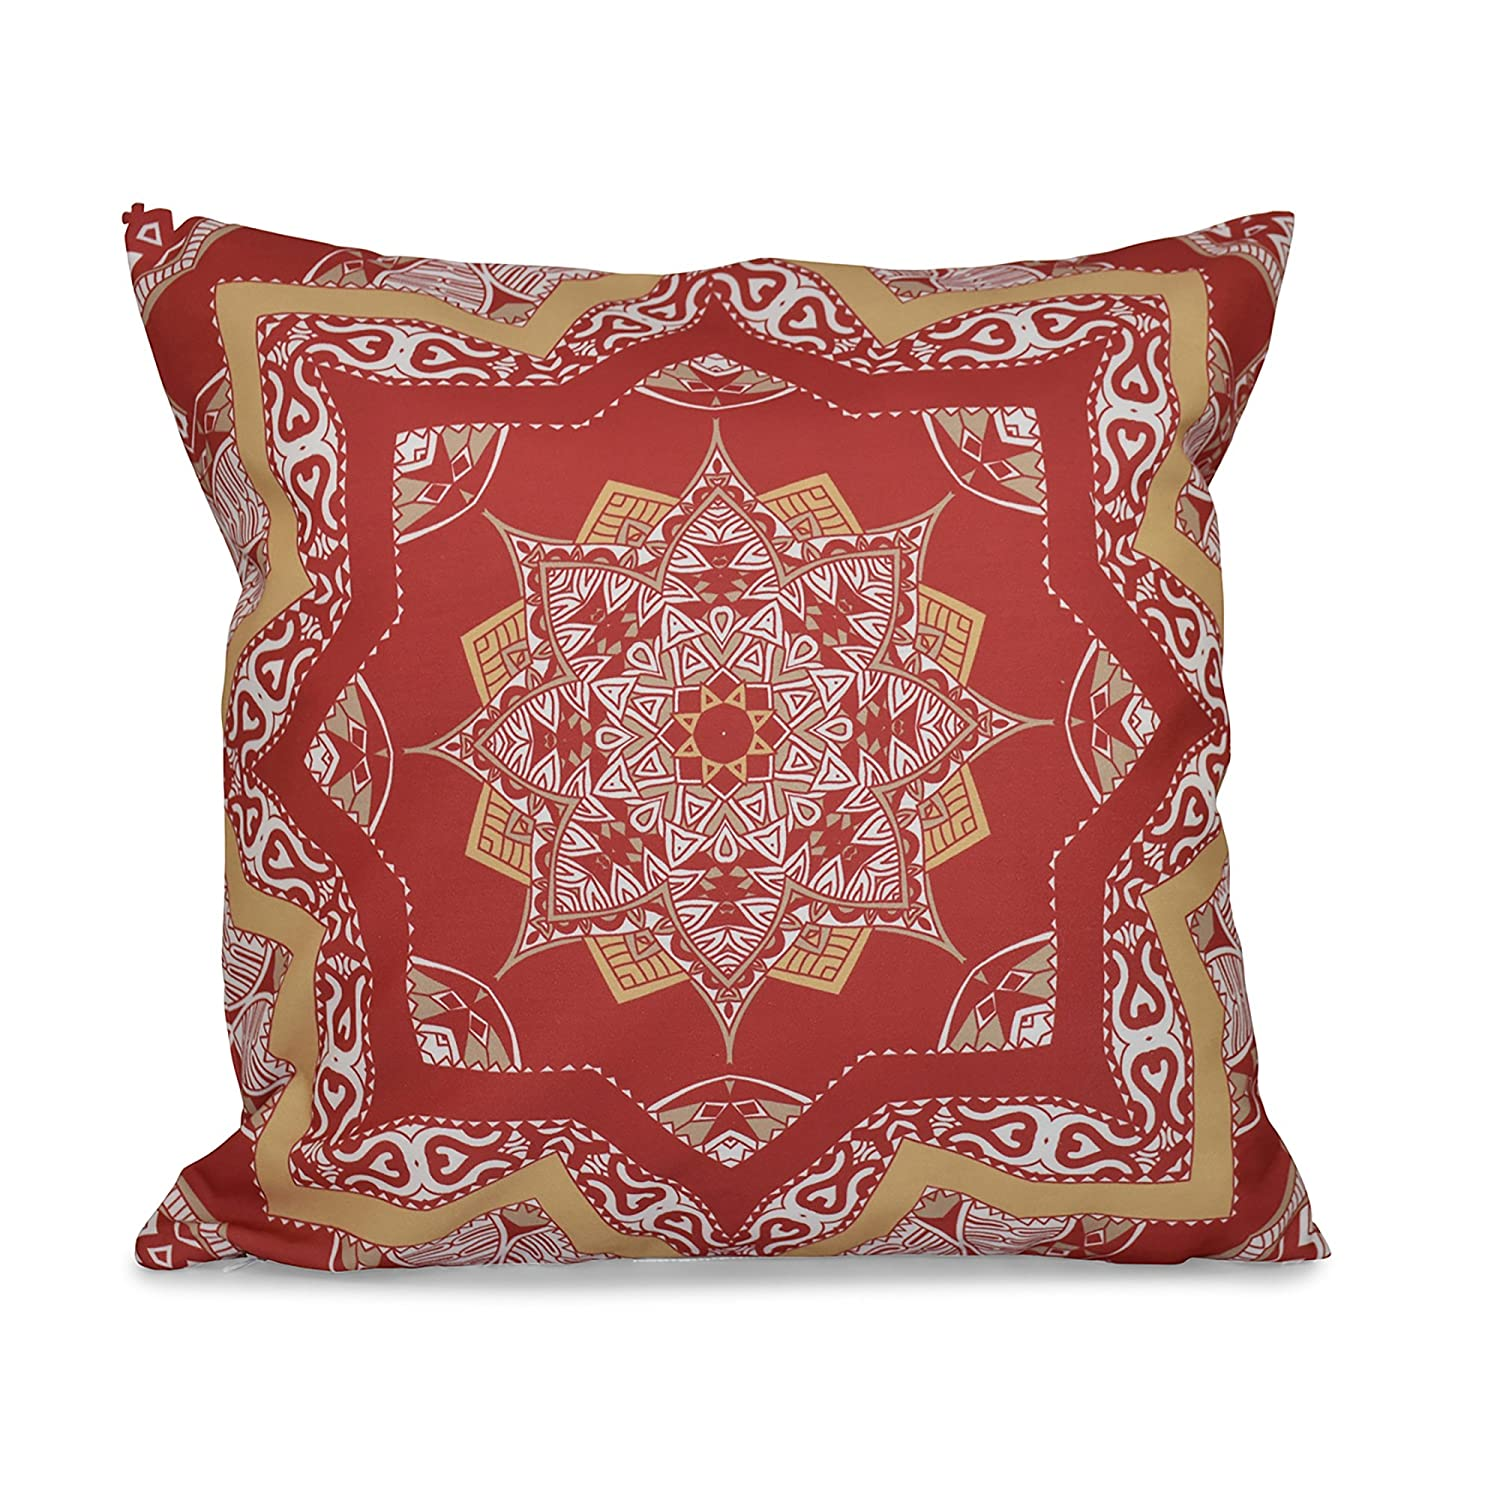 Geometric Print Pillow E by design PGN552OR15YE3-20 20 x 20-inch Coral 20x20 Orange Shawl